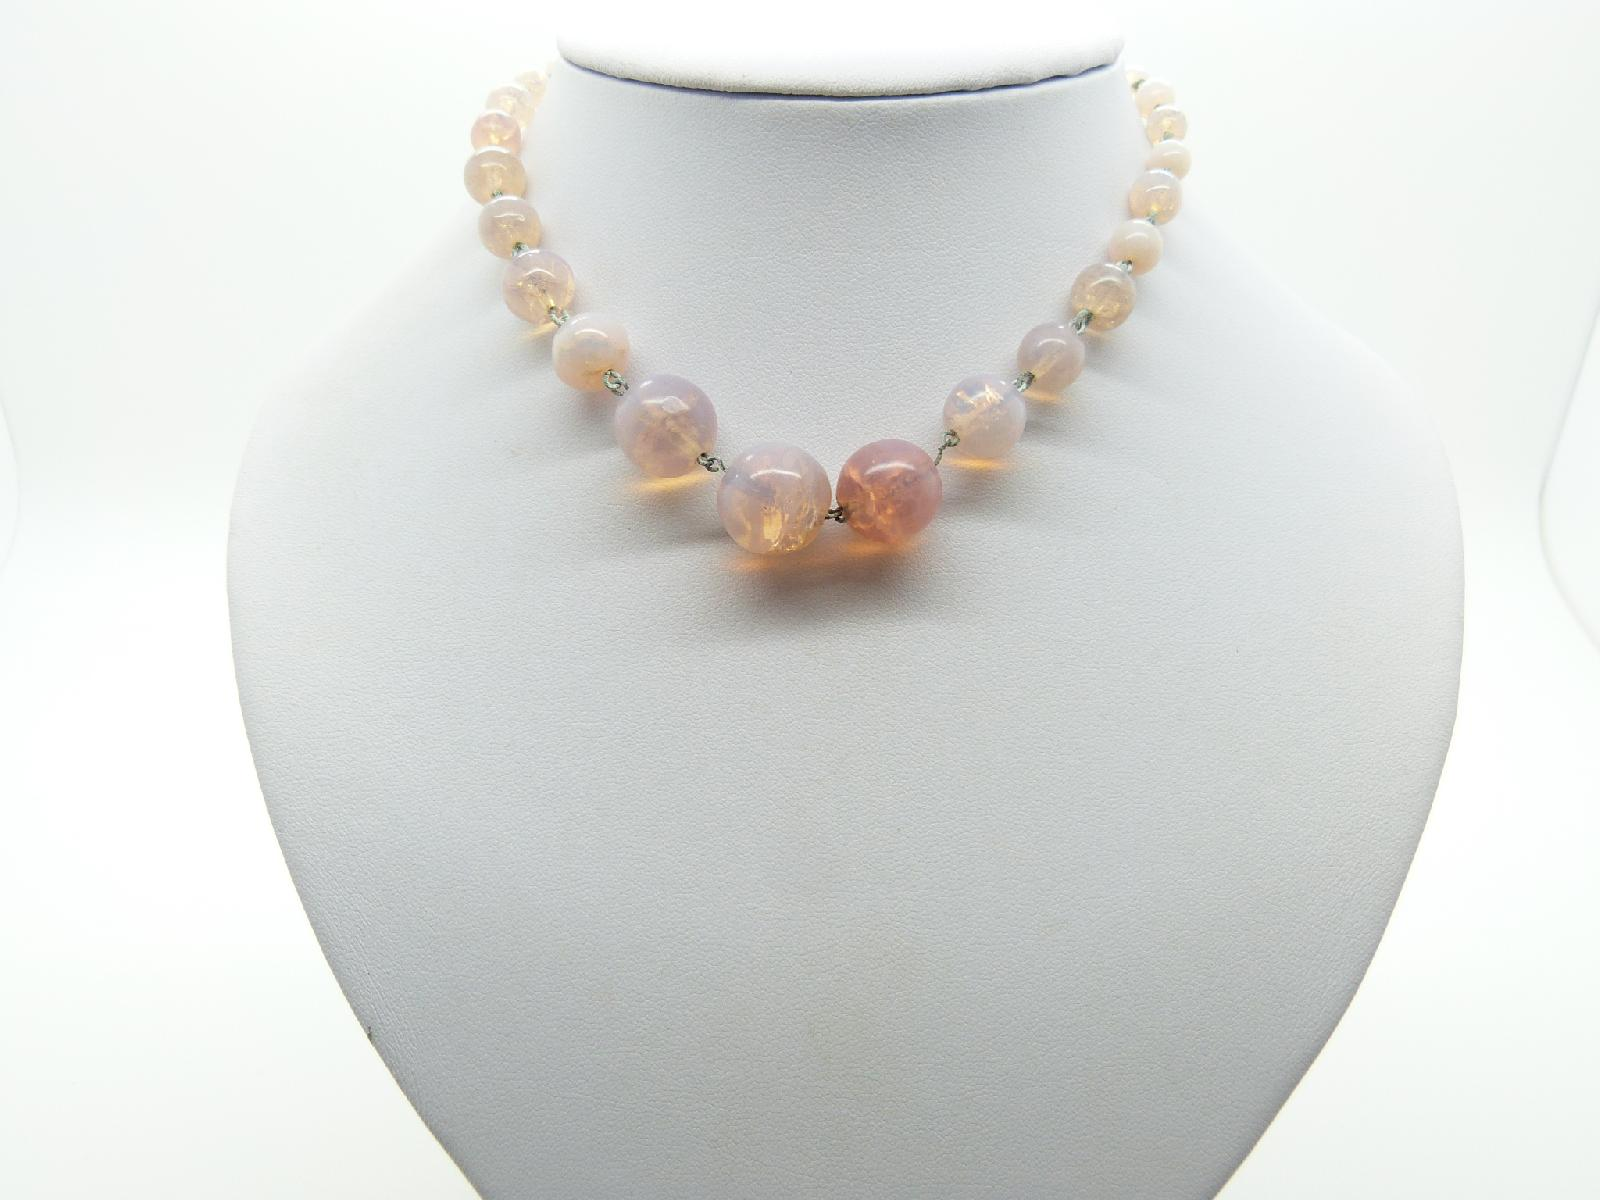 £32.00 - Vintage 30s Pretty Art Deco Opaline Pink Glass Bead Necklace